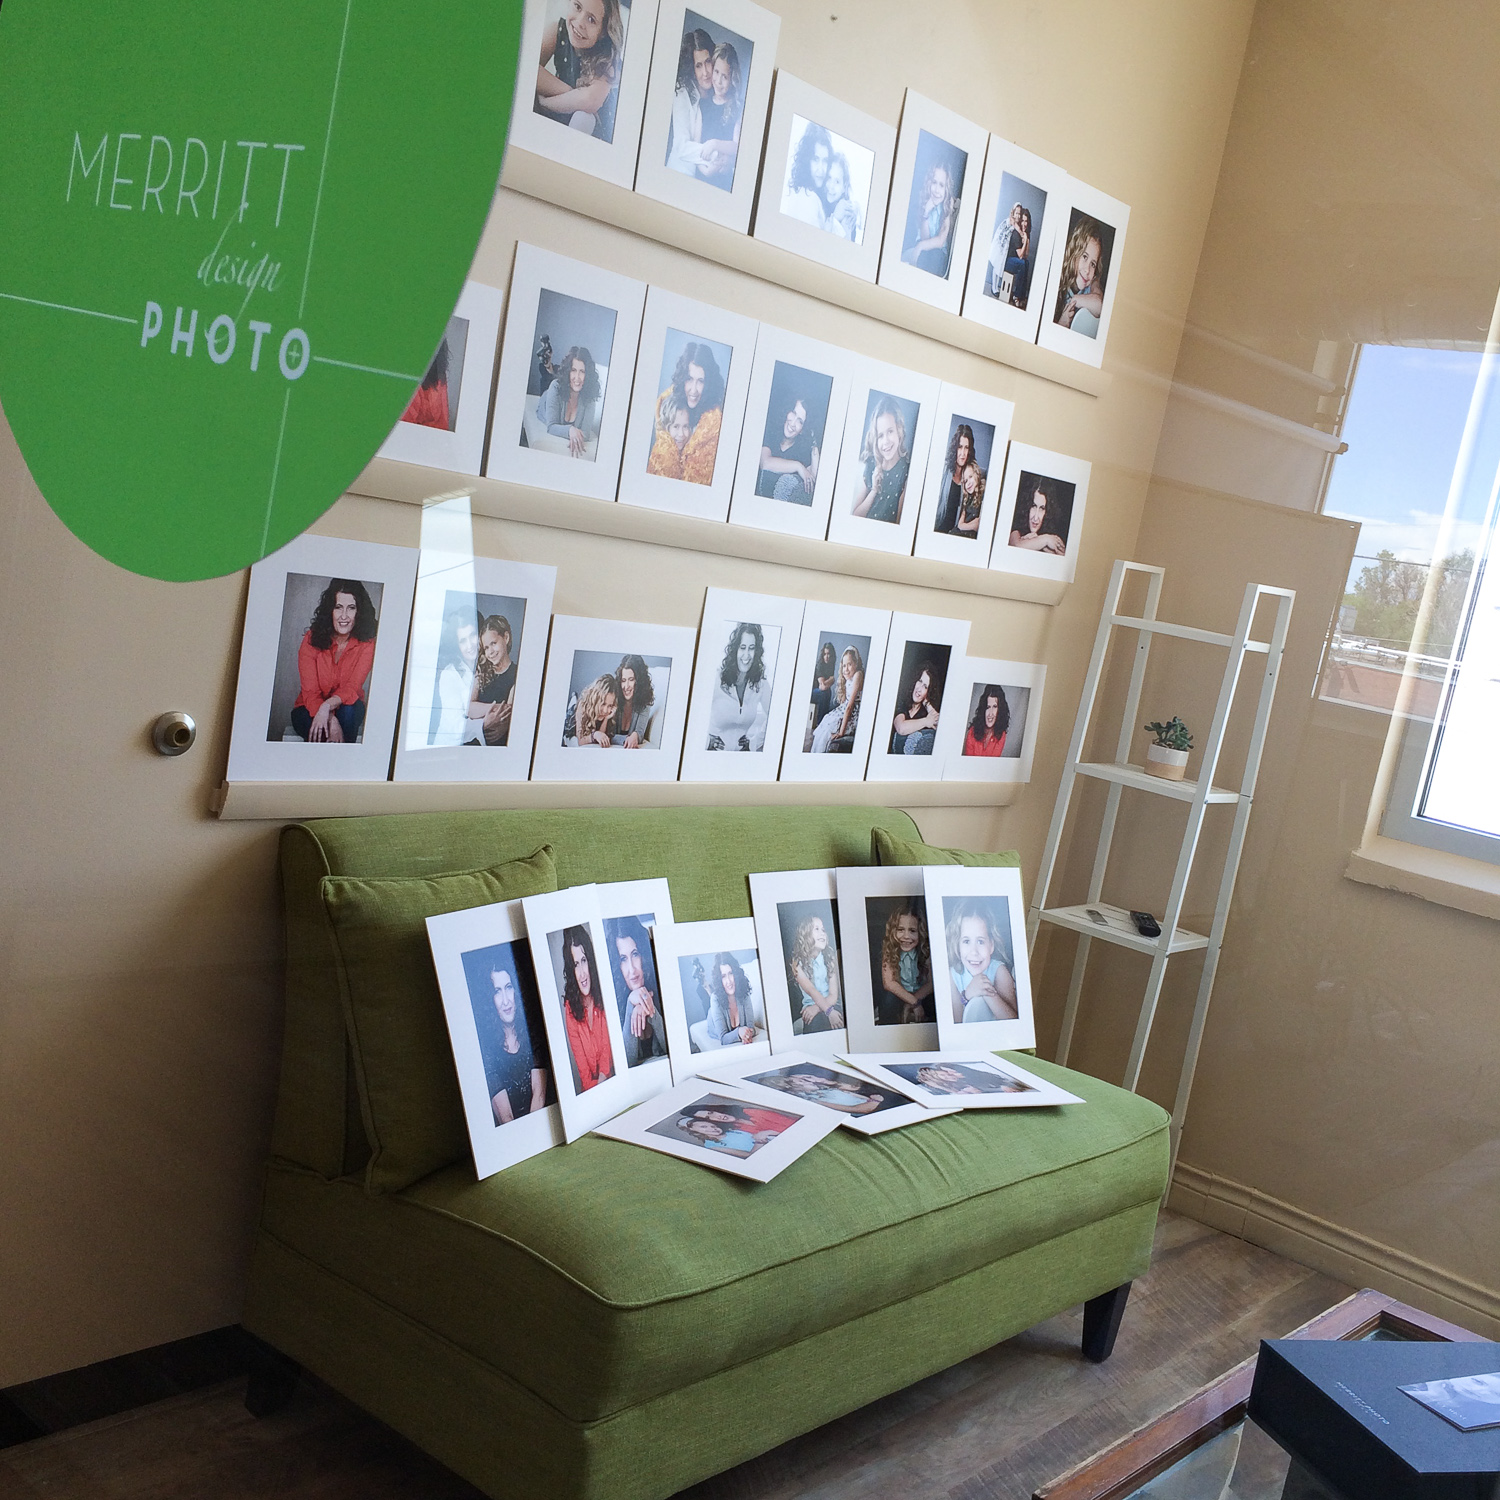 Matted prints on reveal wall during in person sales session at Merritt Portrait Studio in Denver.